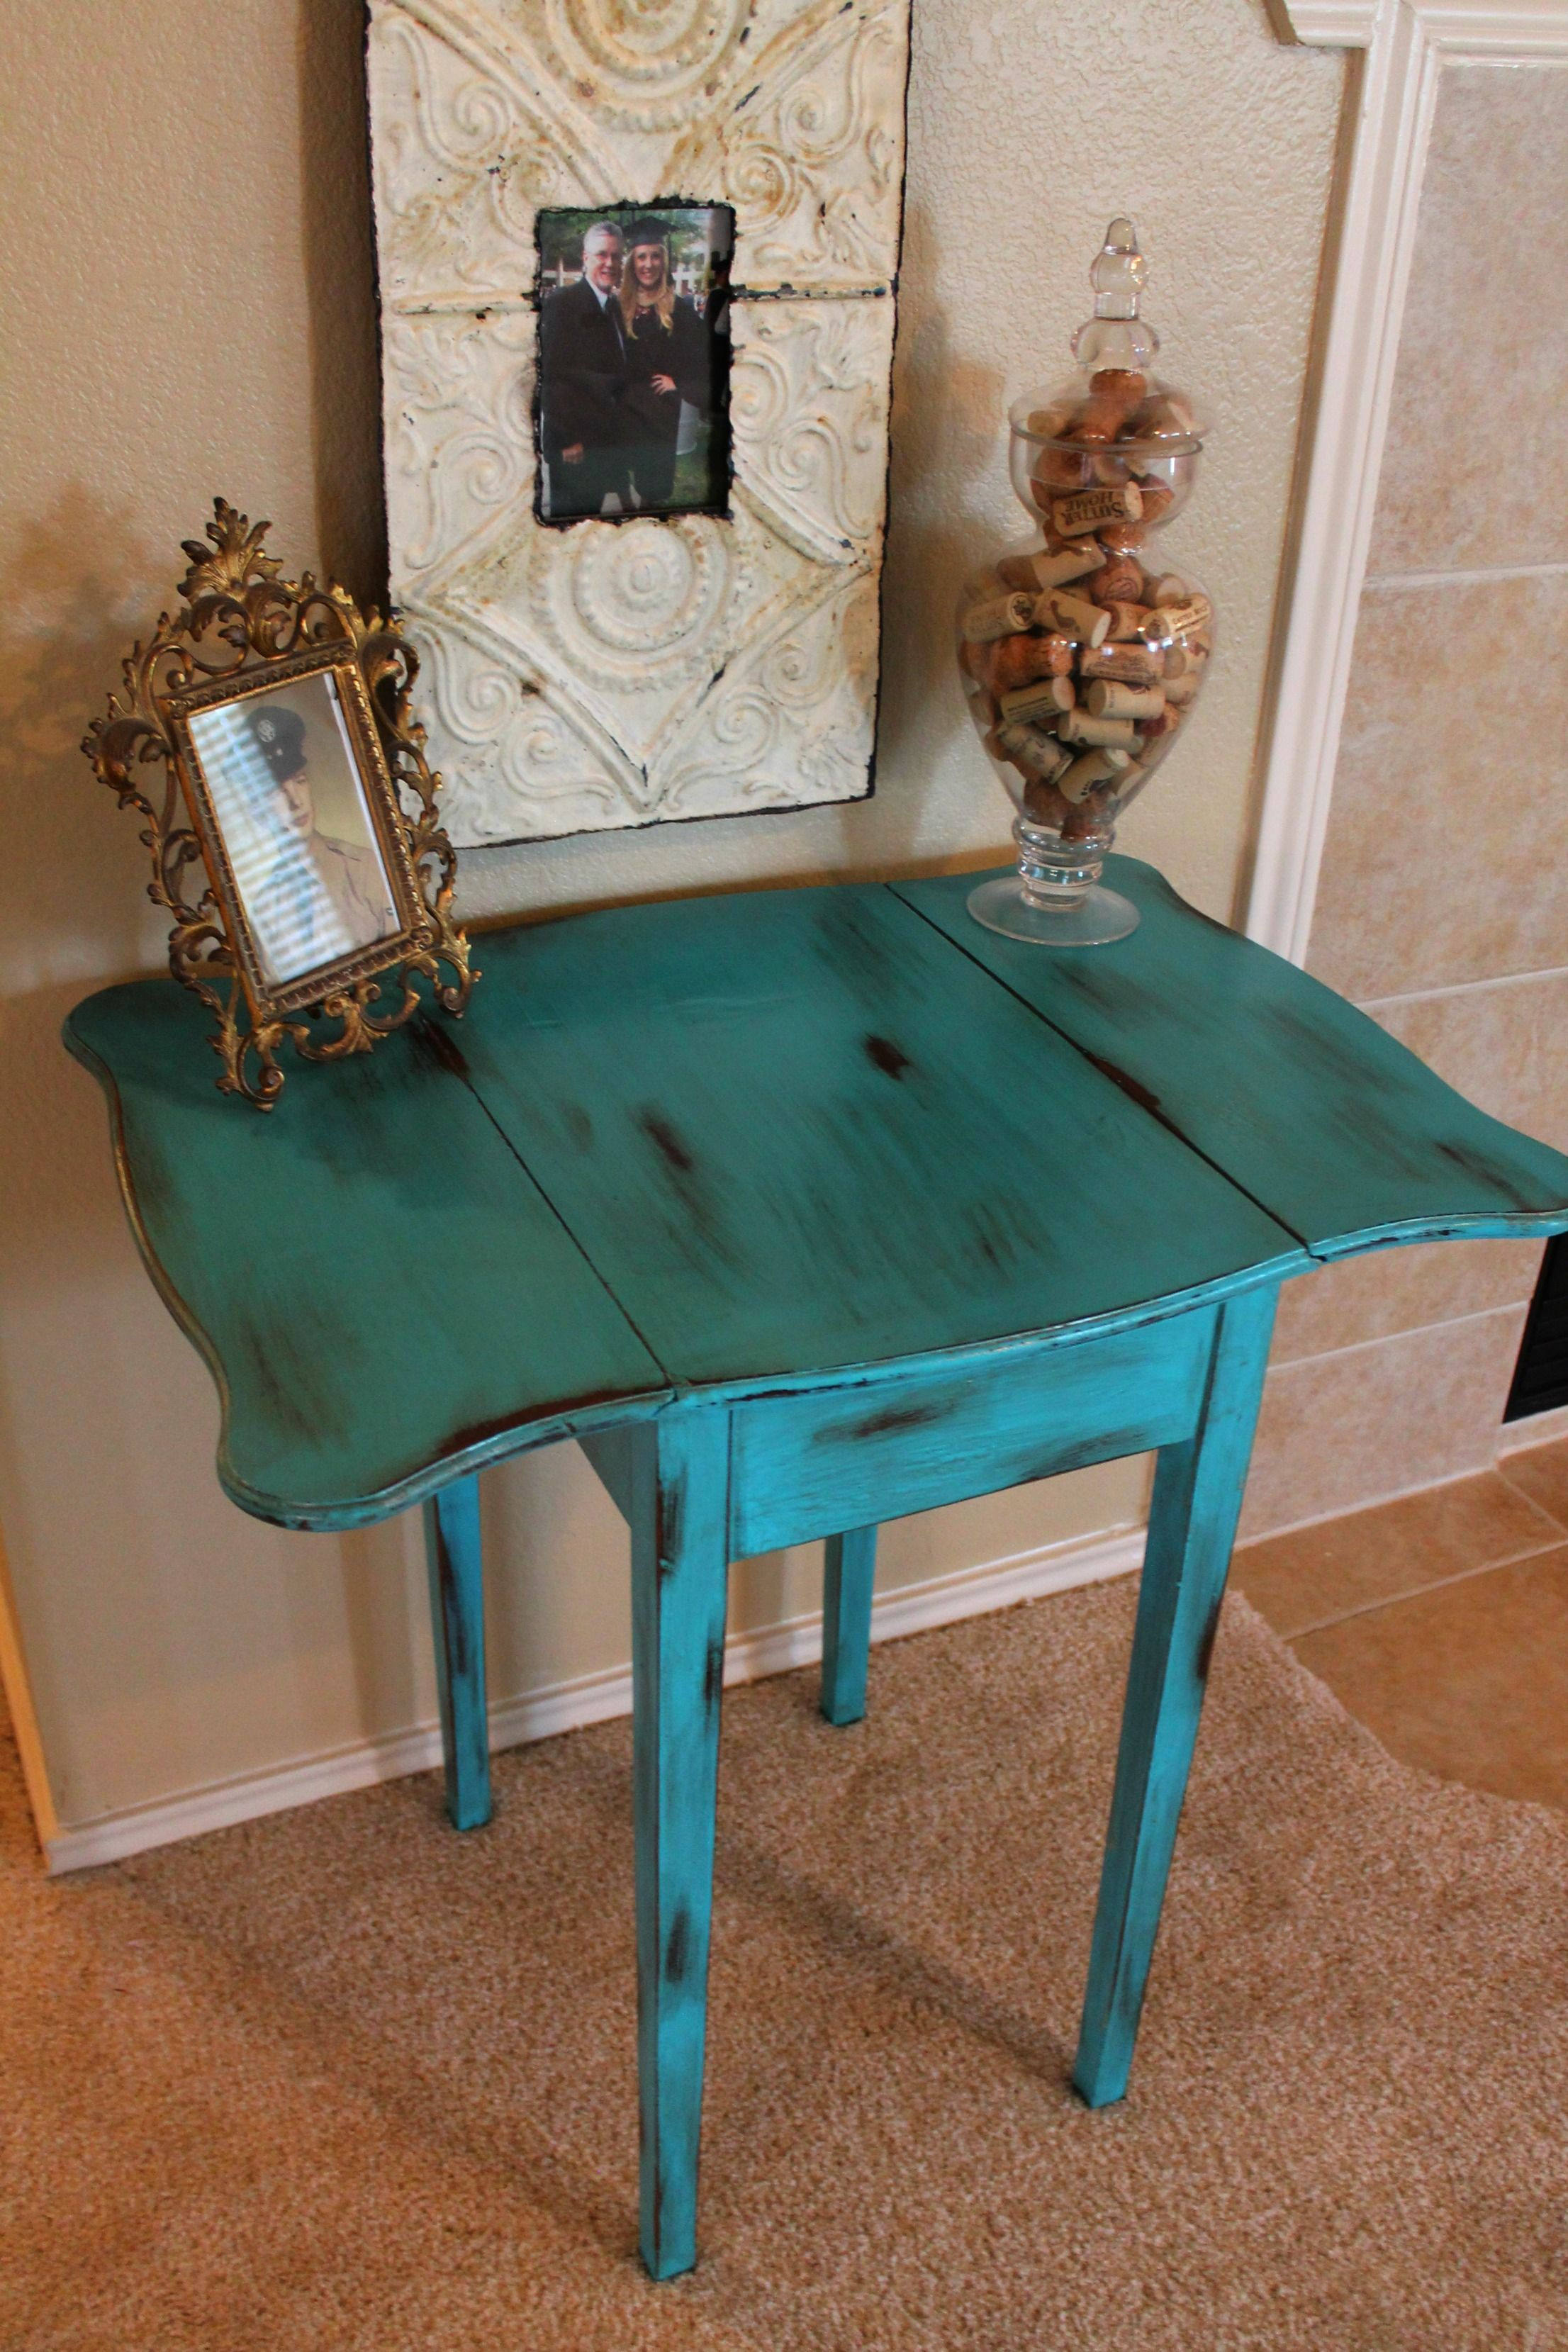 Distressed turquoise drop leaf table | Such LoveLeigh Design ...